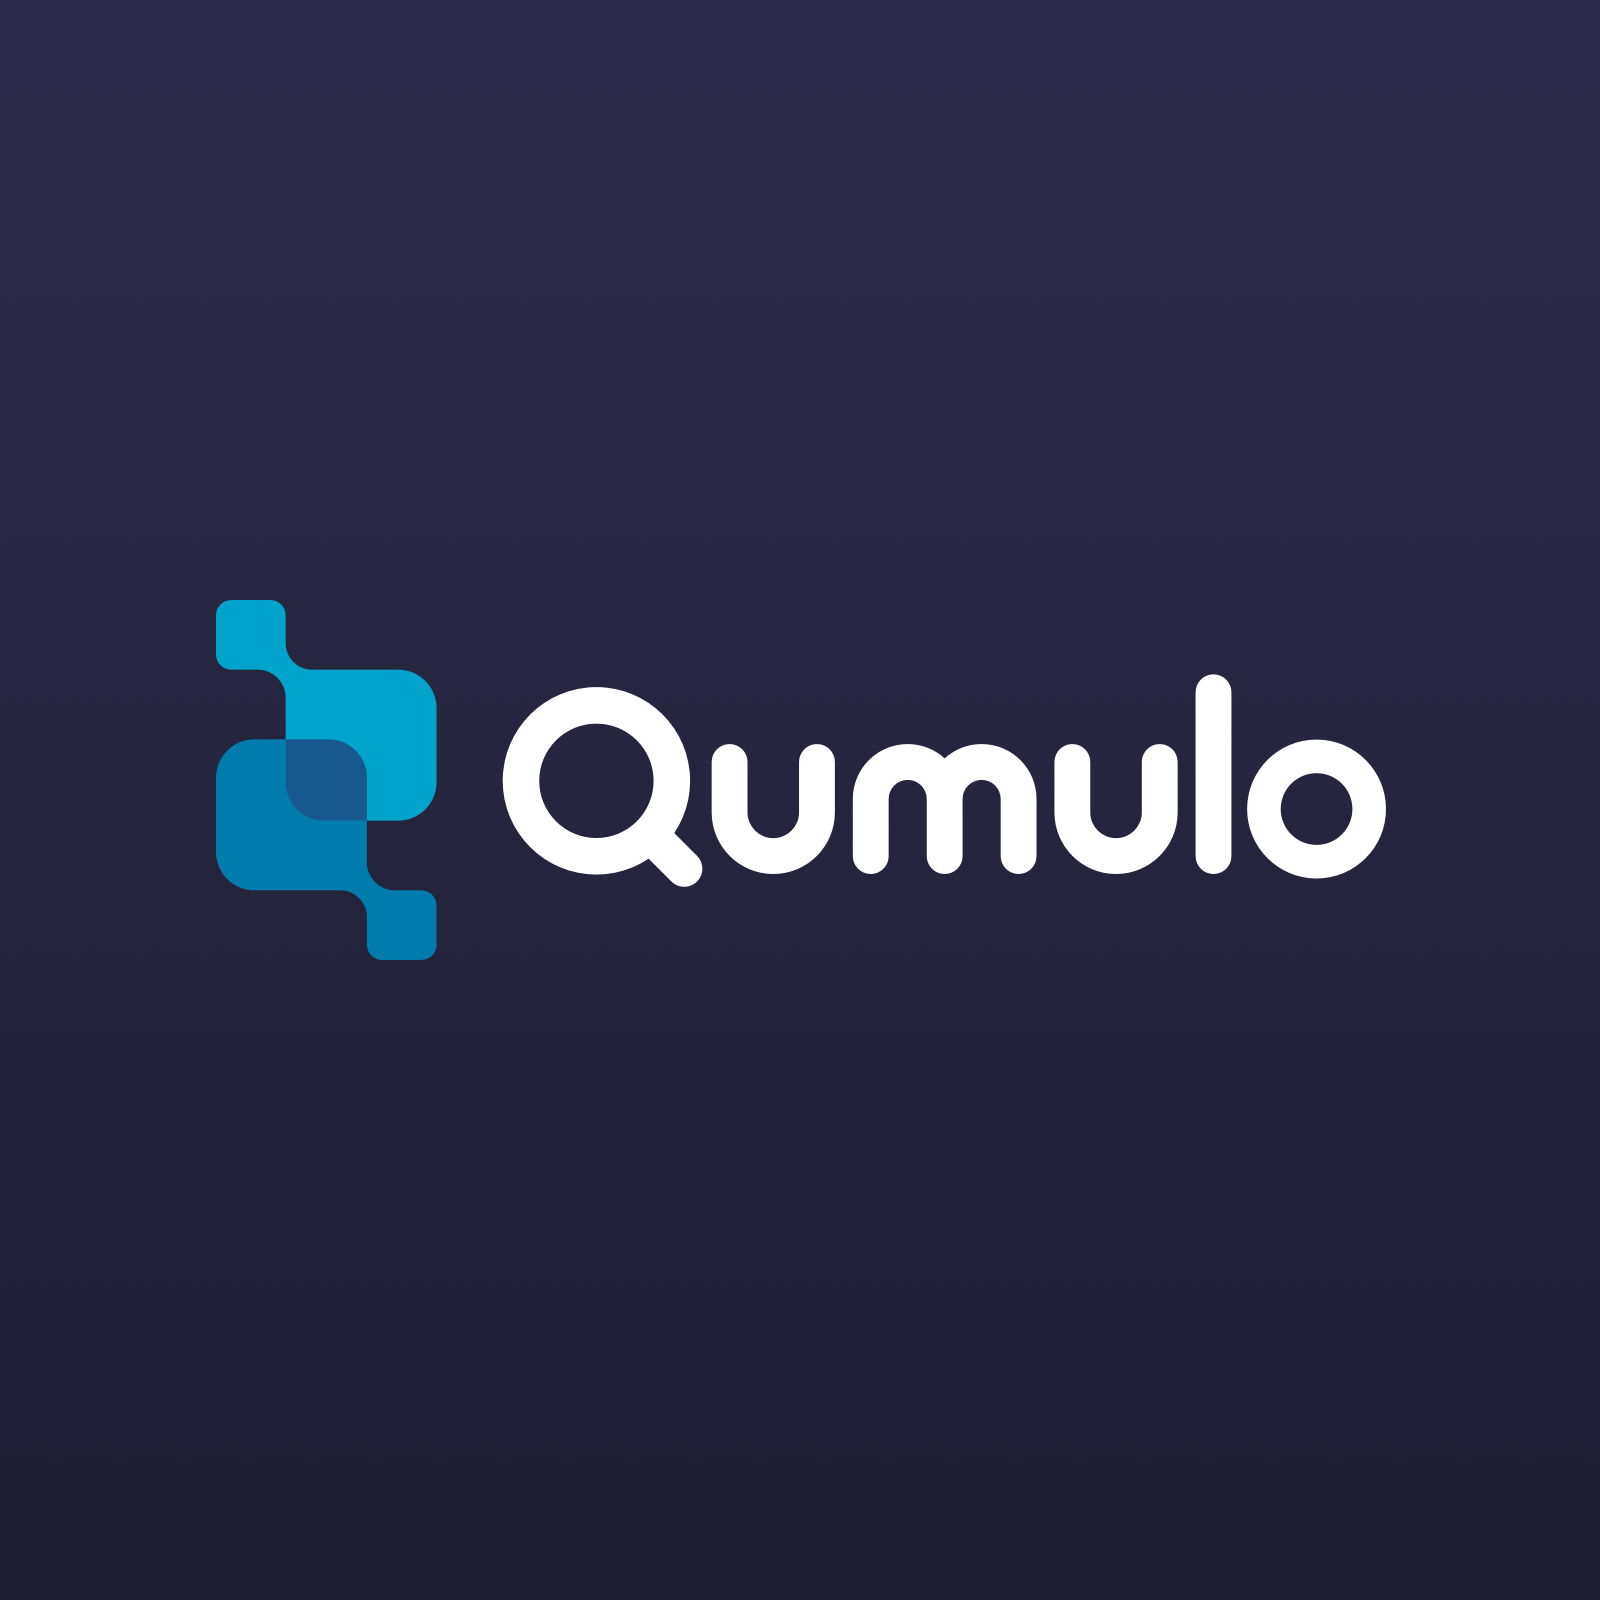 cover-qumulo@2x.png